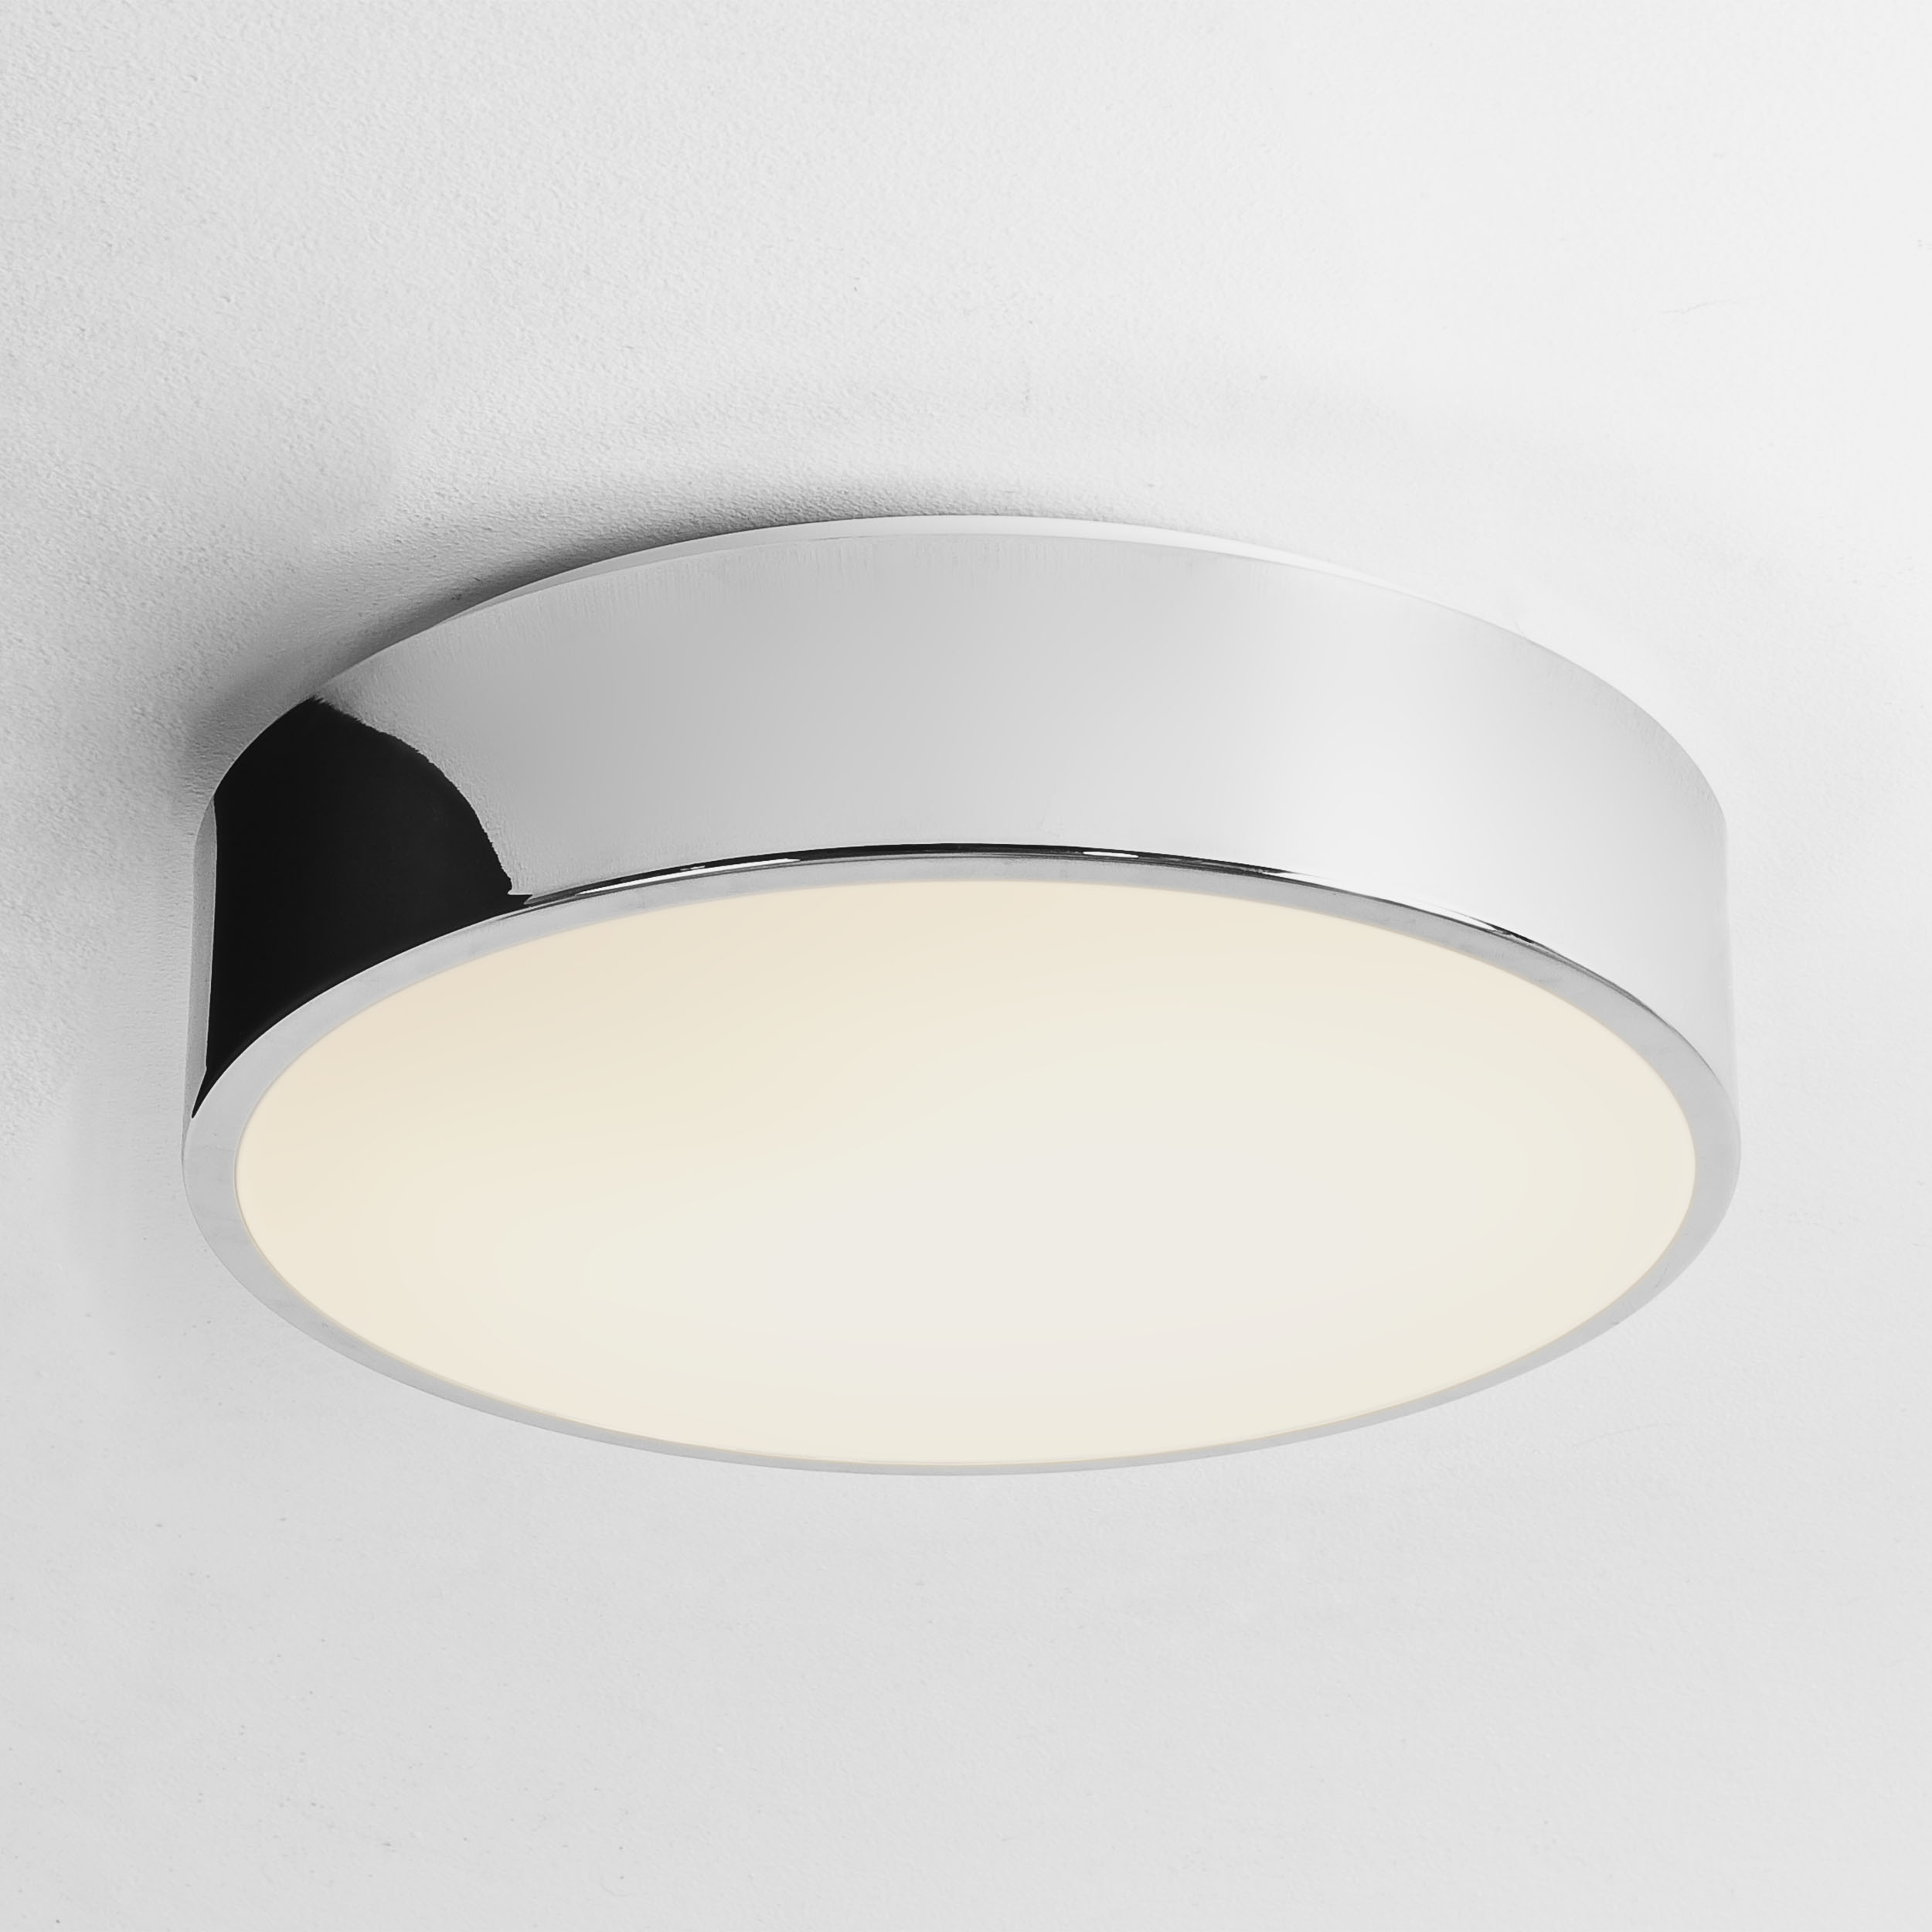 Astro Mallon LED round bathroom ceiling light 16W polished chrome IP44 330mm Thumbnail 1